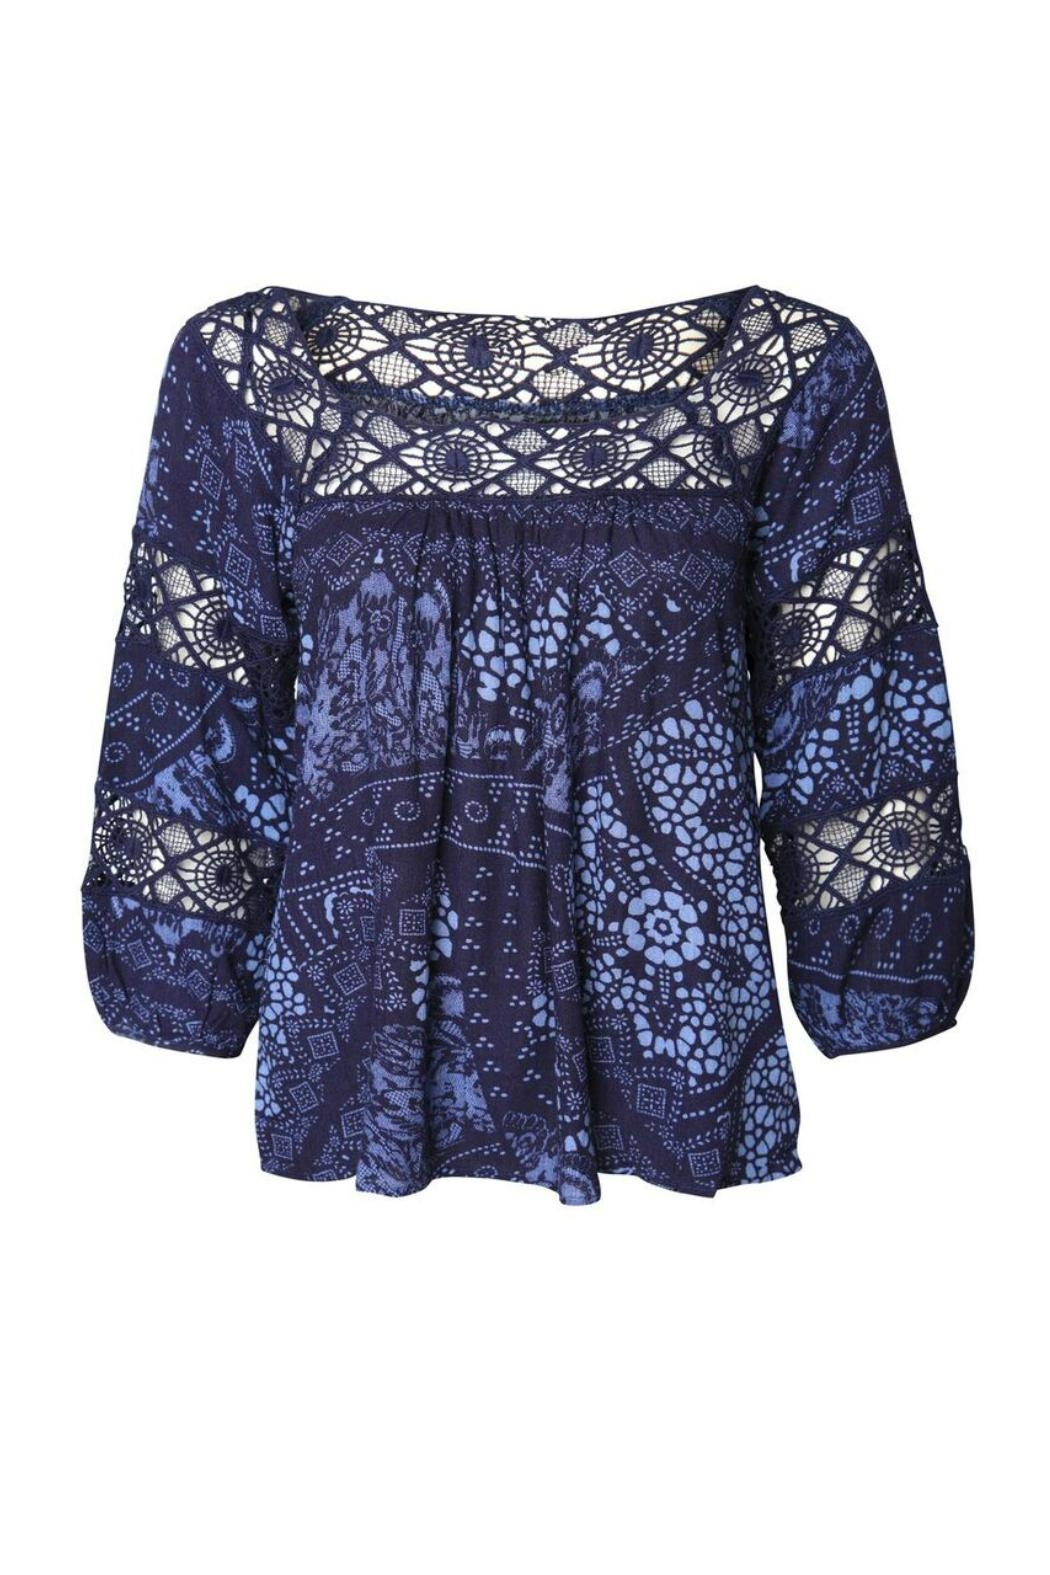 Dex Peasant Blue Blouse - Main Image